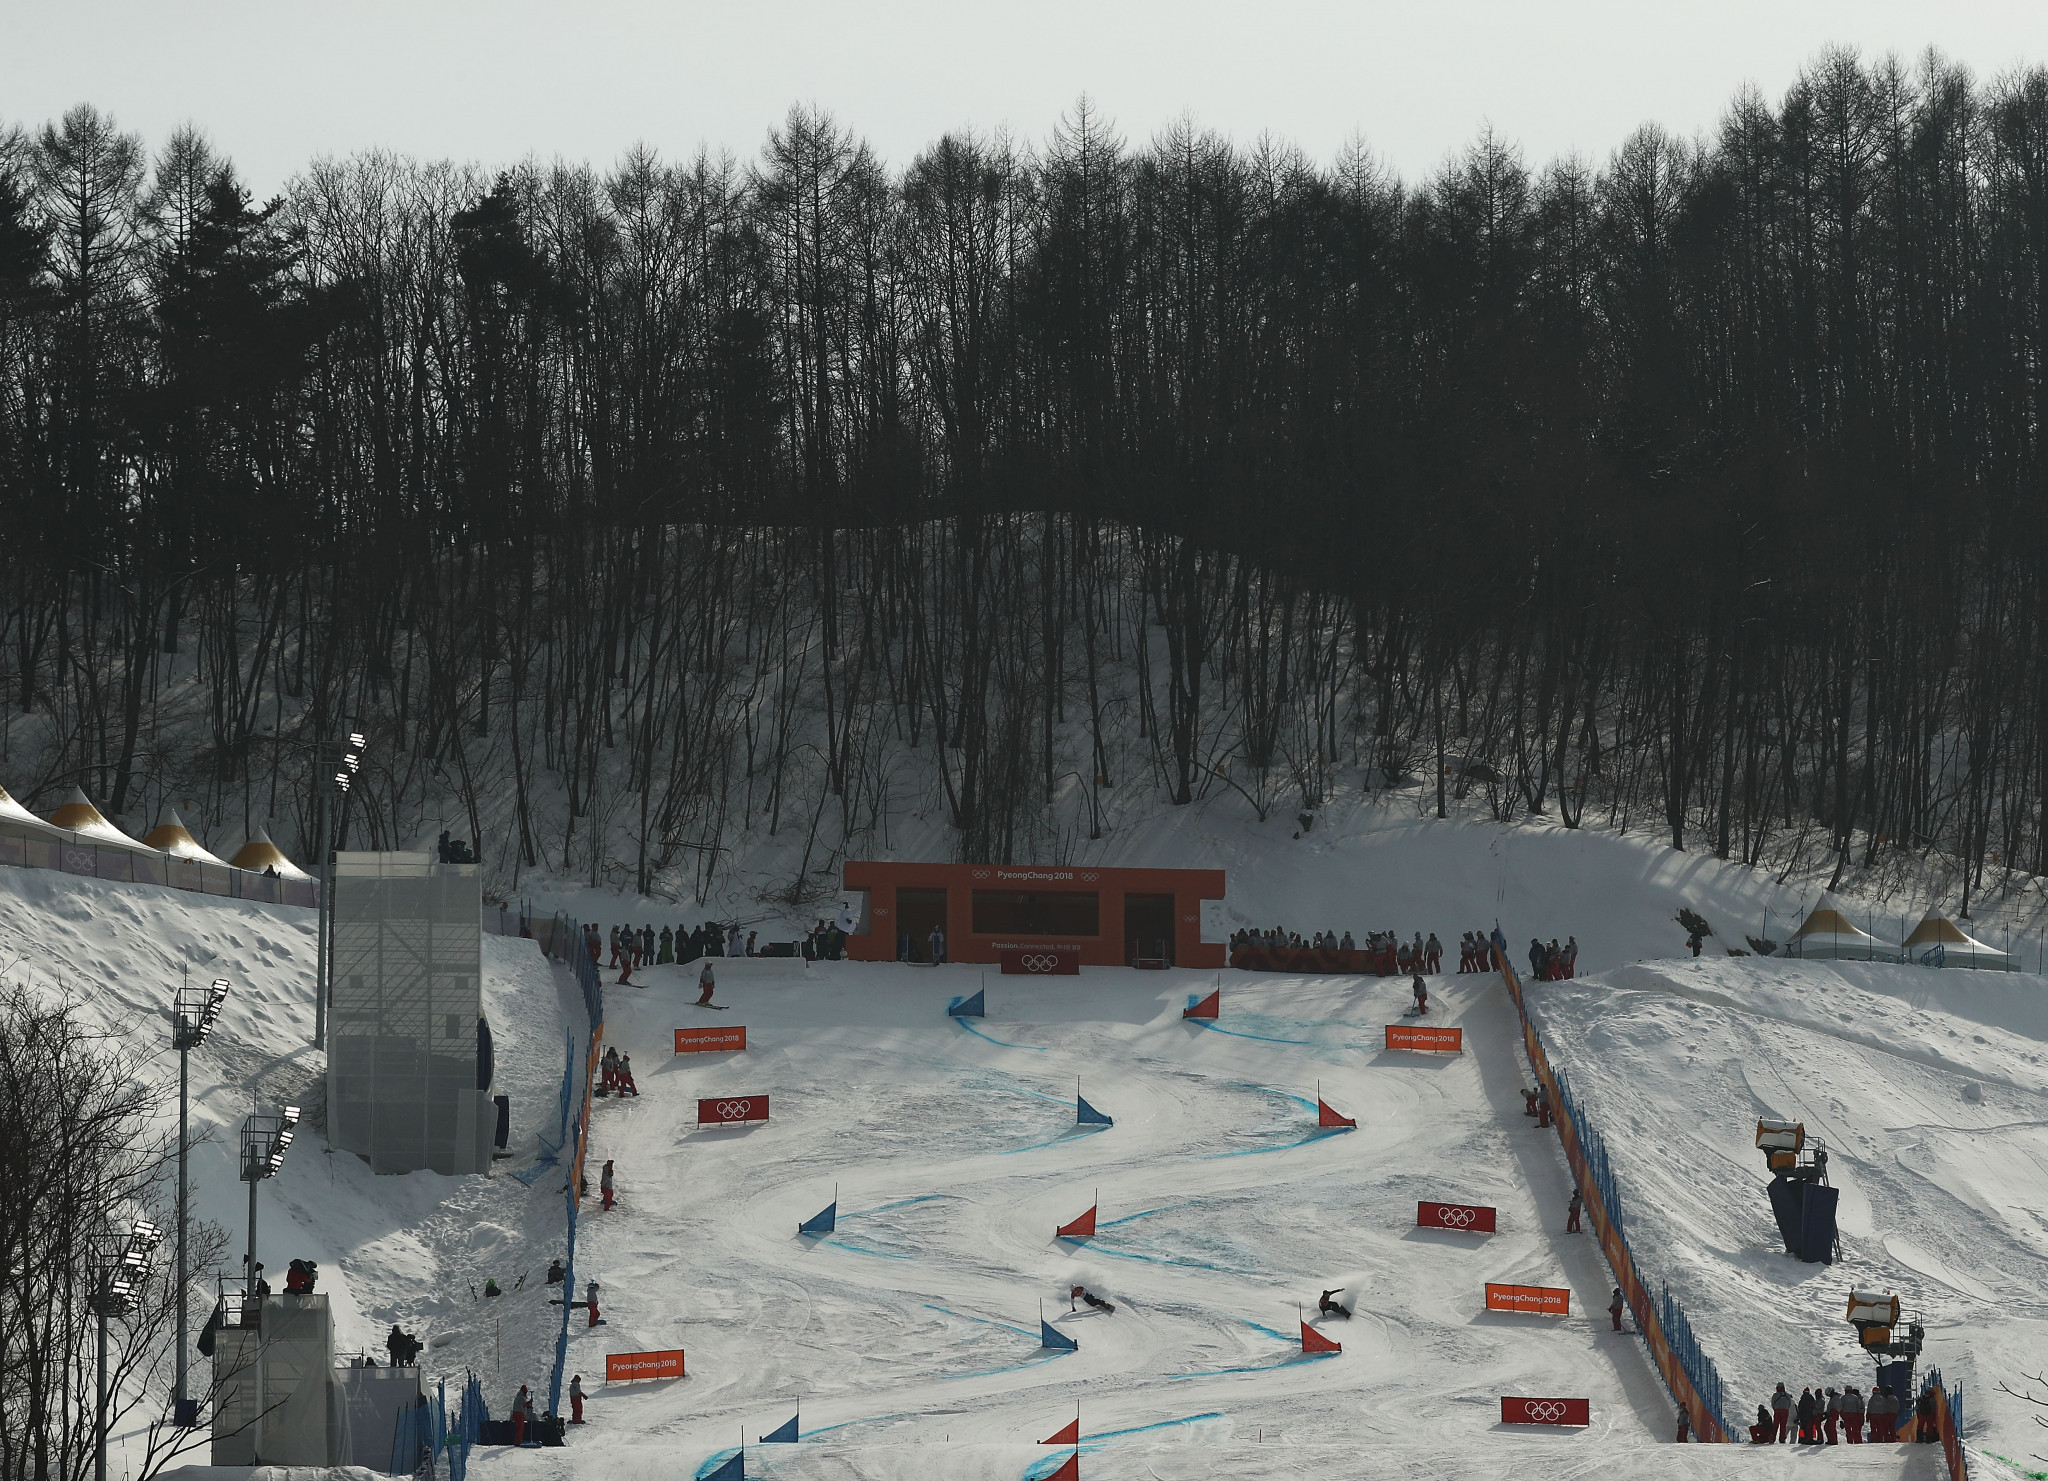 FIS Snowboard World Cup to make historic return to Pyeongchang 2018 venue for back-to-back parallel giant slalom races